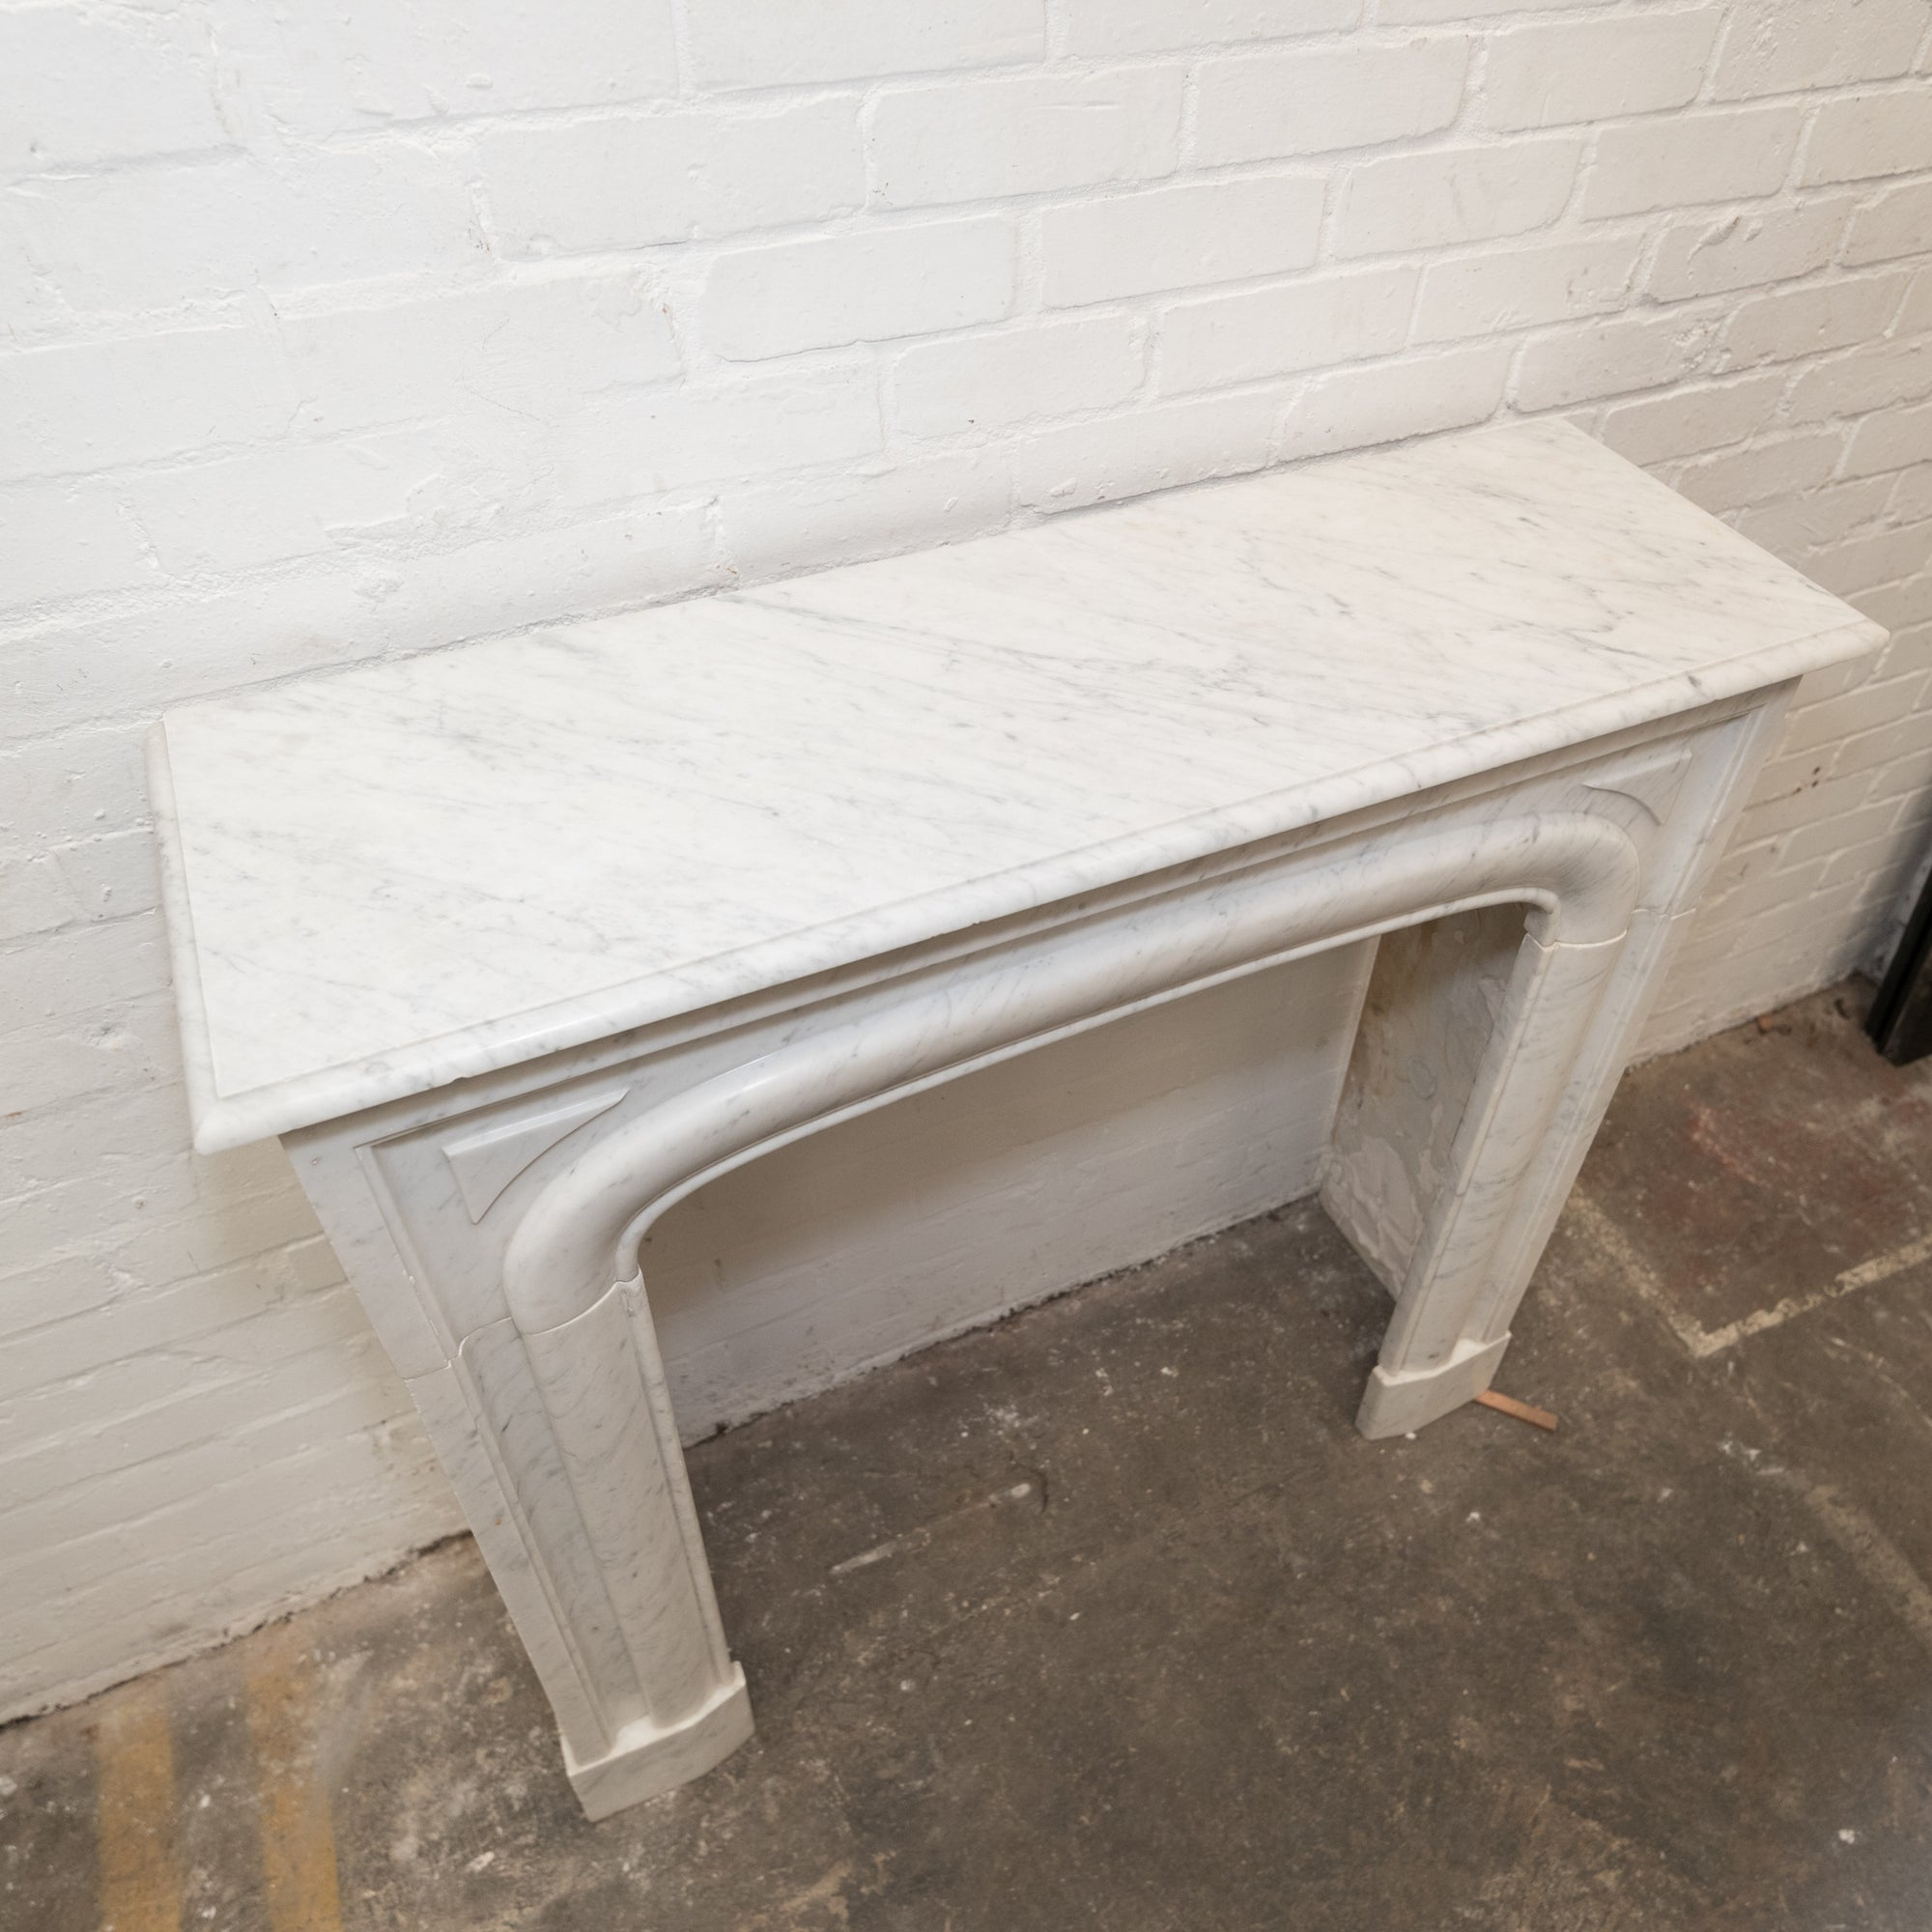 Reclaimed Louis Style Carrara Marble Fireplace Surround | The Architectural Forum